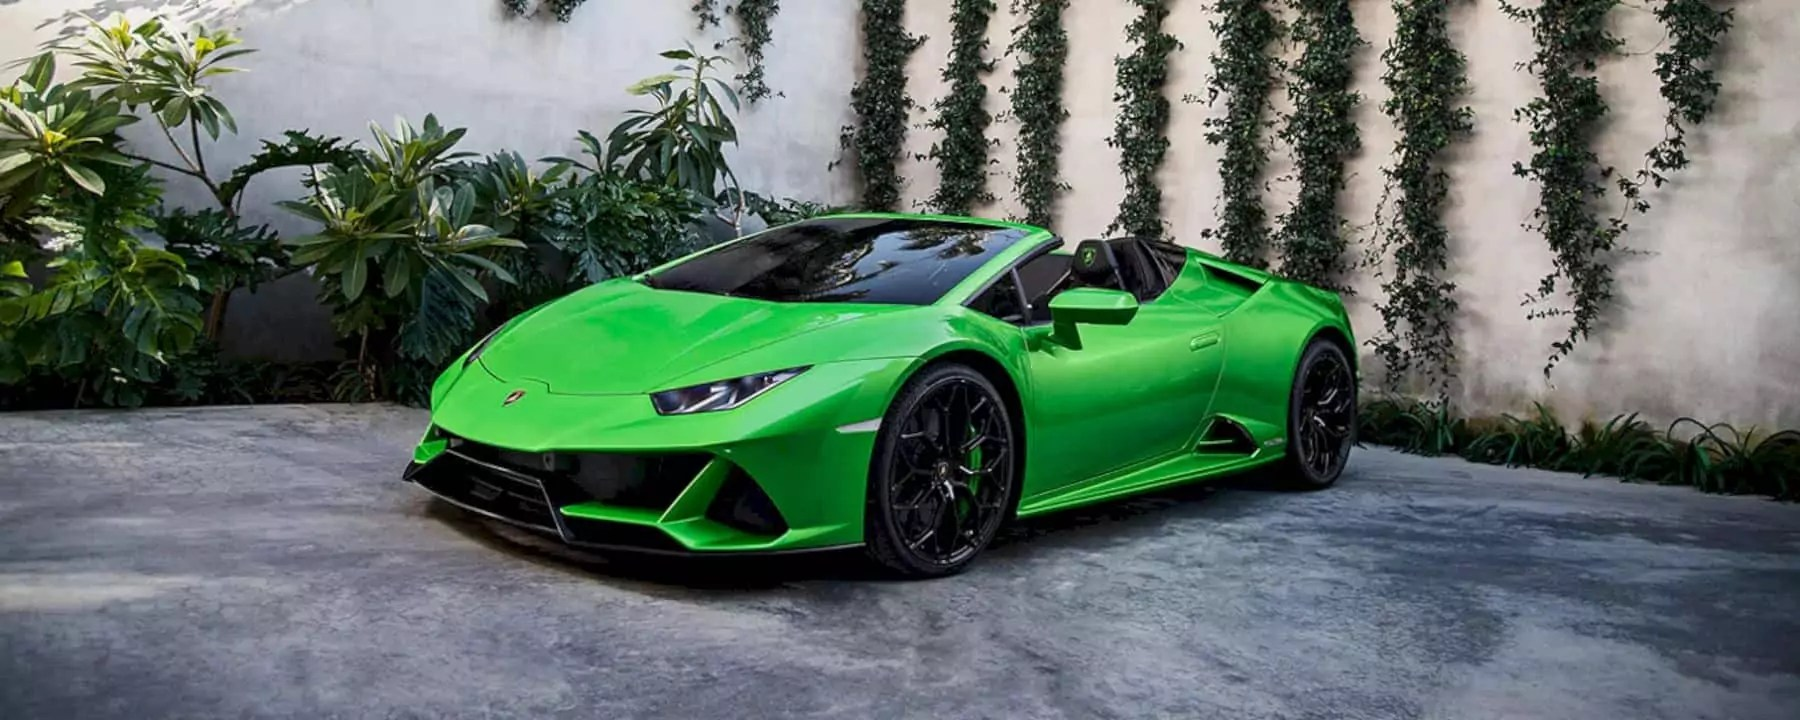 Lamborghini Huracan Evo Spyder: Every day Amplified!